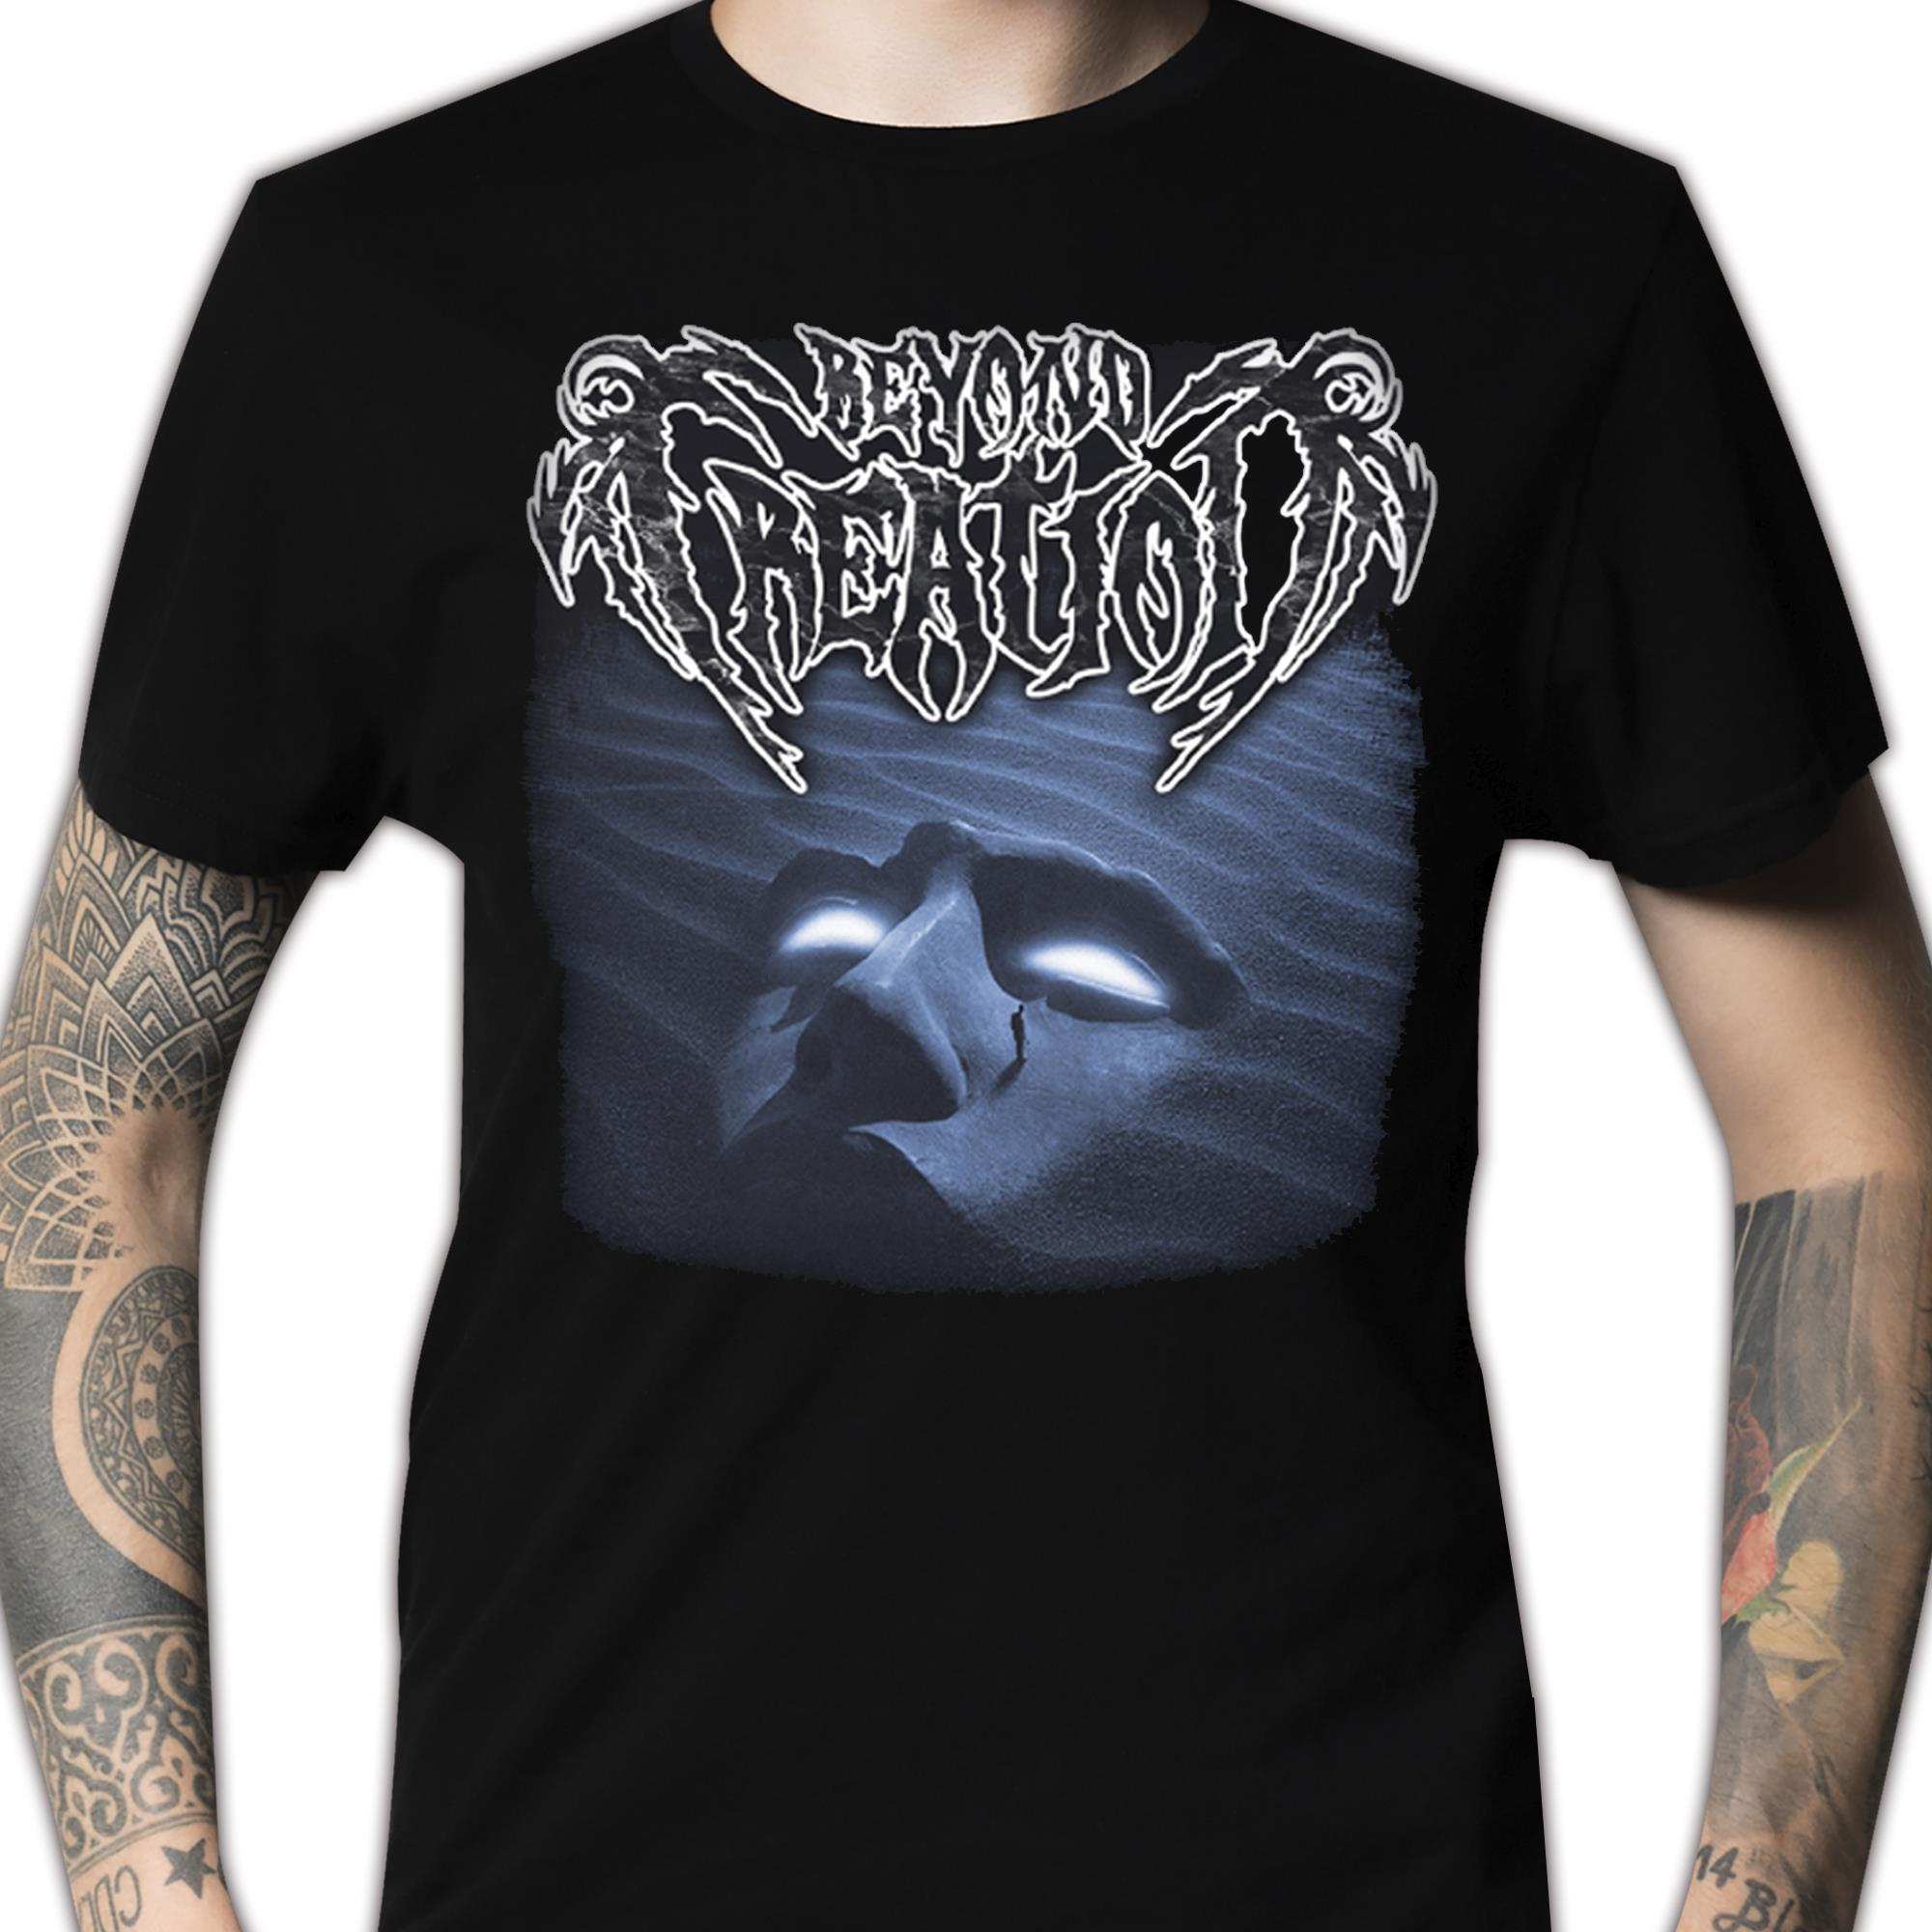 Surface's Echoes T-Shirt